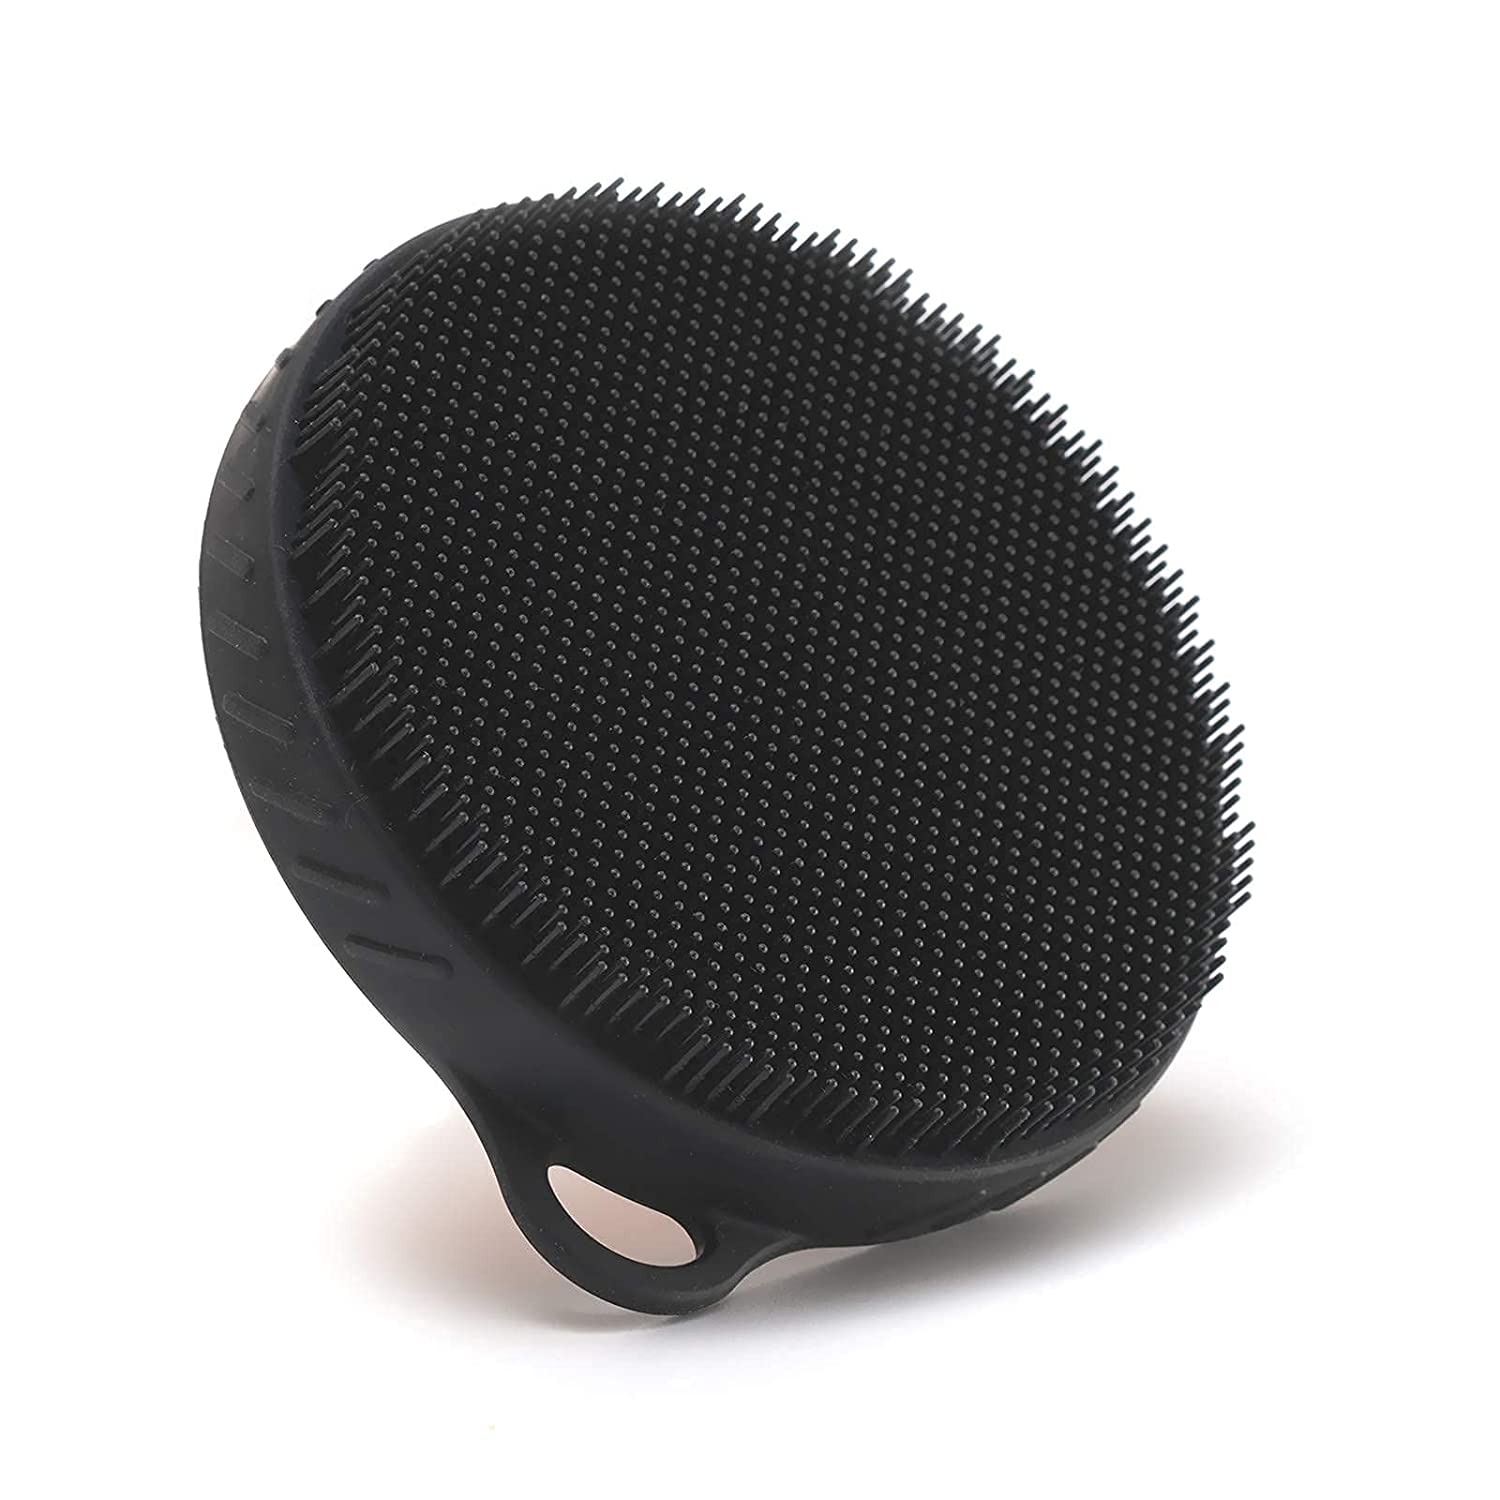 INNERNEED Food-grade Soft Max 77% OFF Silicone Body Exfoliat Seasonal Wrap Introduction Scrubber Gentle